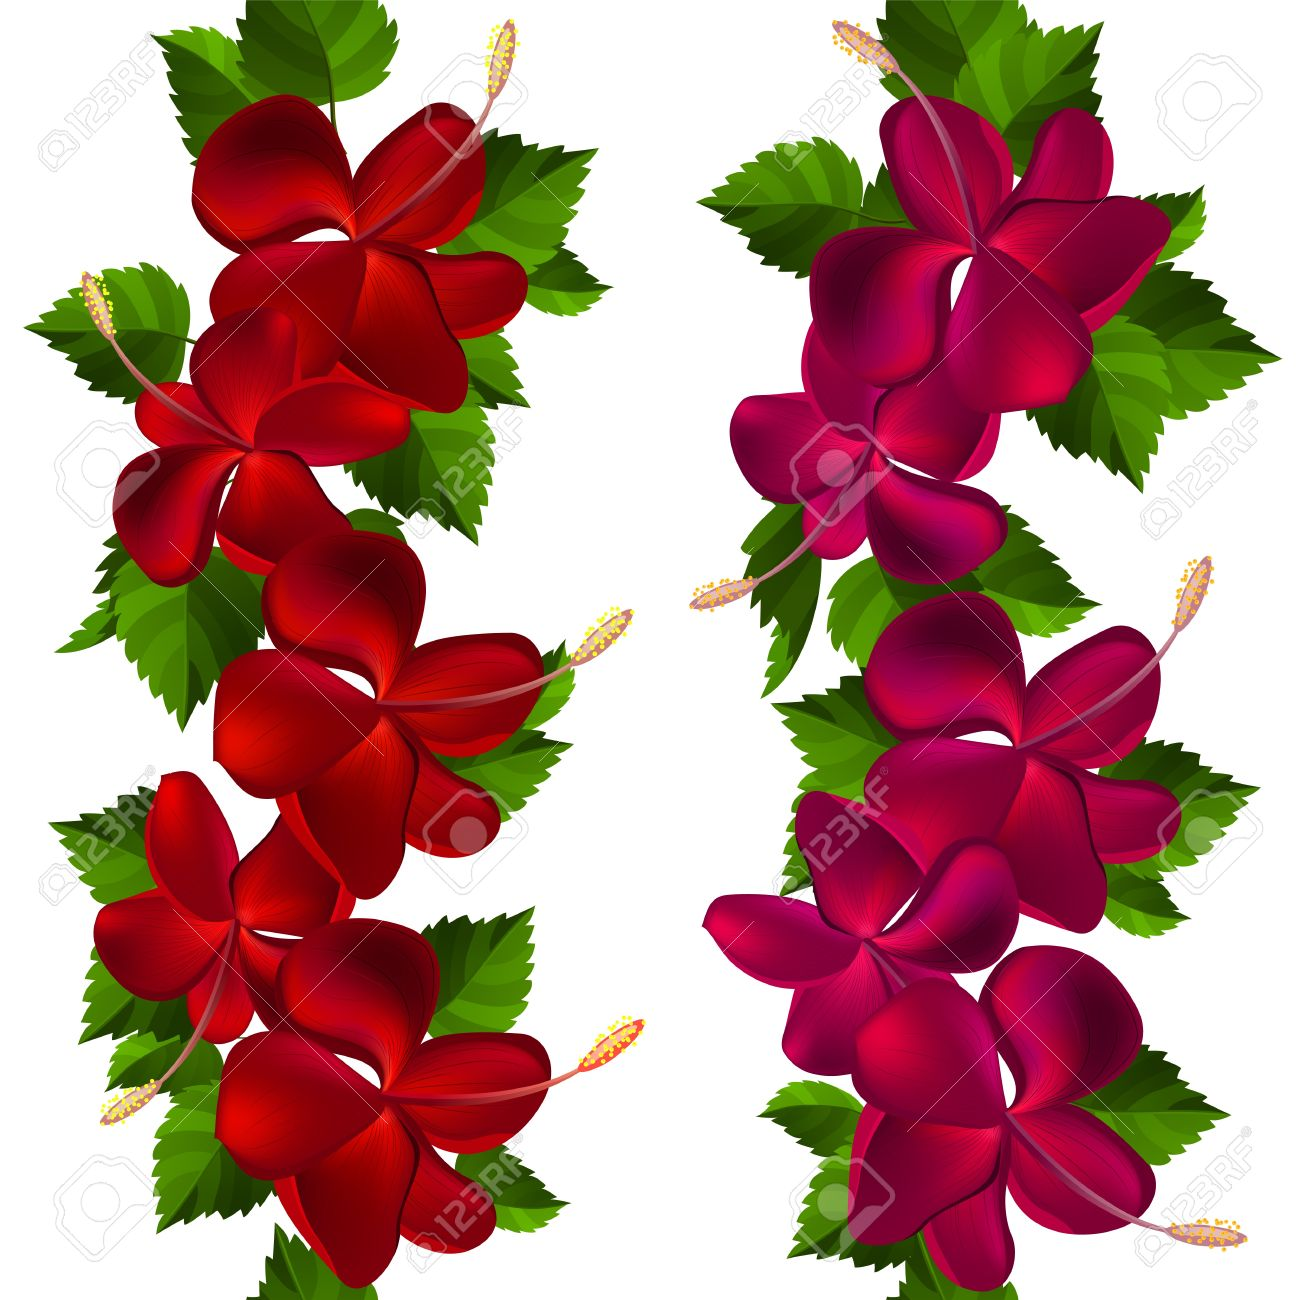 Hibiscus flower clipart image hibiscus flower - Samless Border Made Of Hibiscus Flowers Stock Vector 11909413